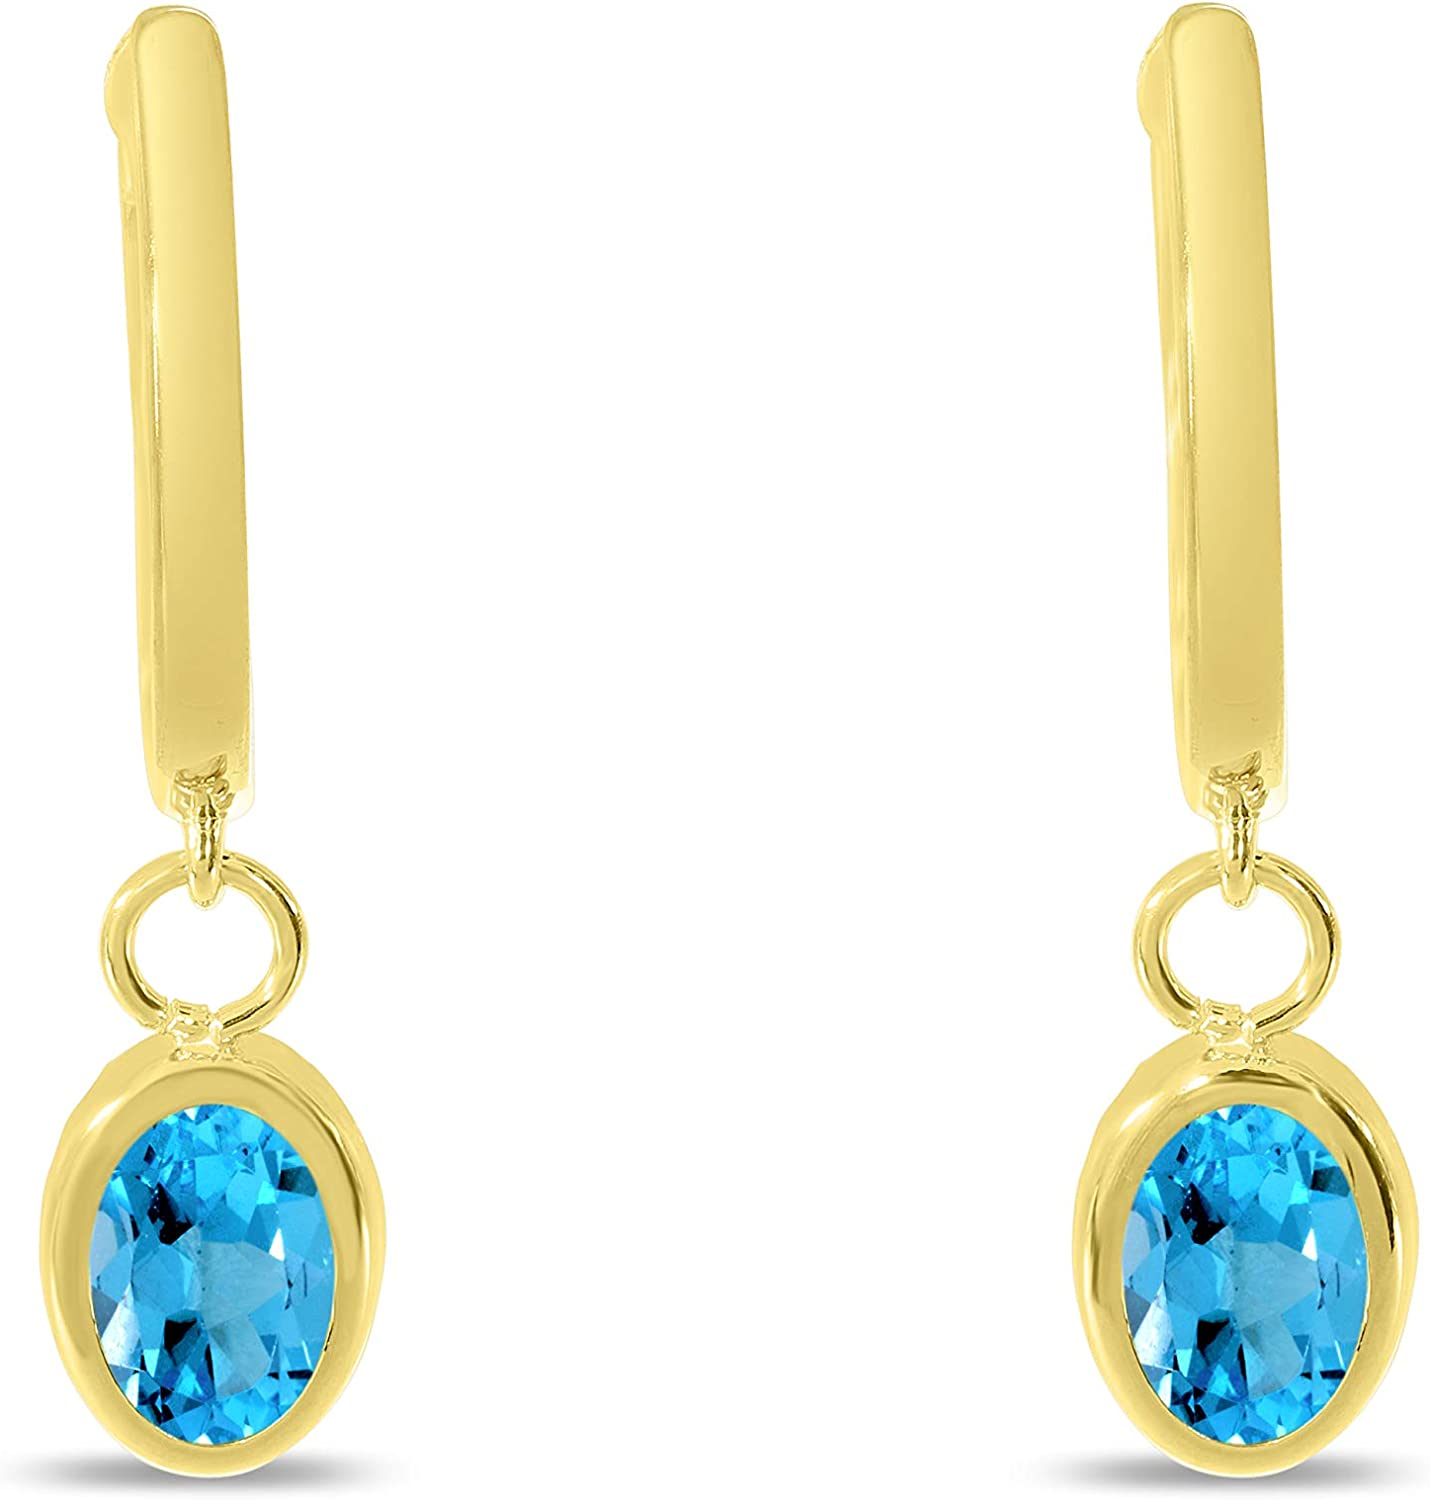 14K Yellow Gold Polished Hoop Discount is also underway and Now on sale Blue Topaz Genuine Earr Dangle